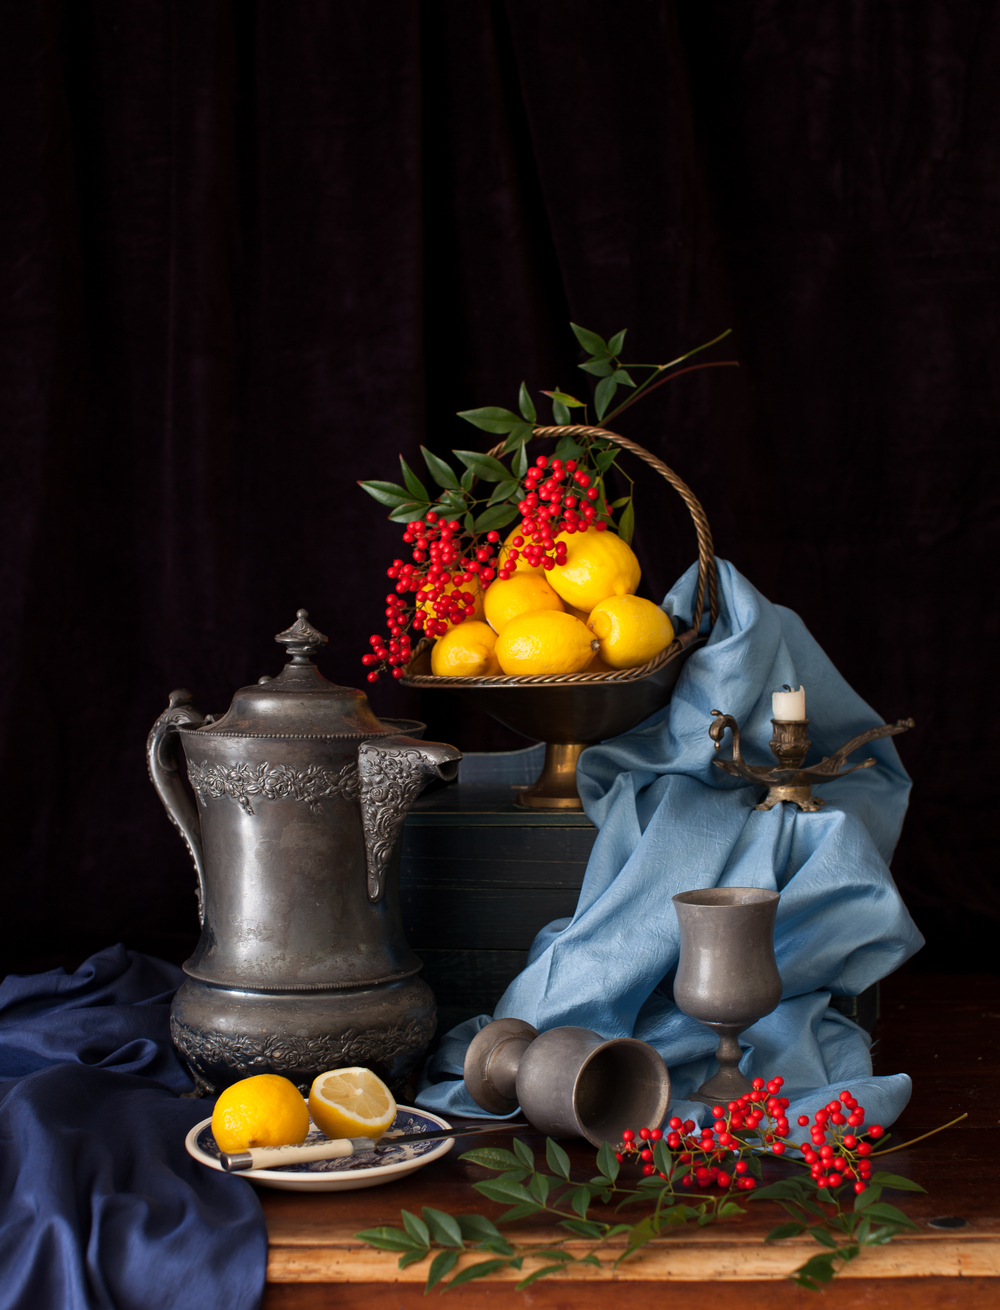 Lemons & Red Berries Still Life 2013